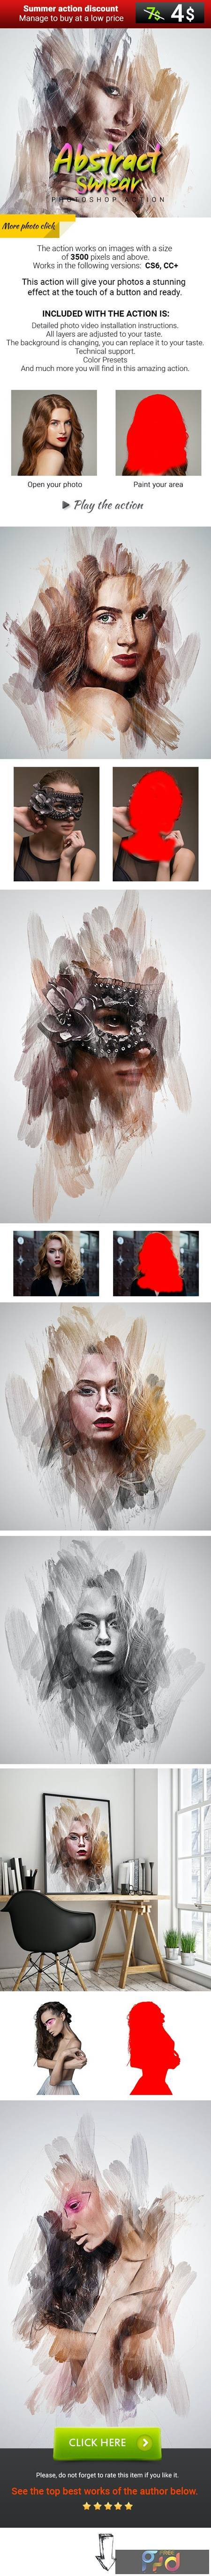 Abstract Smear Photoshop Action 27607459 1